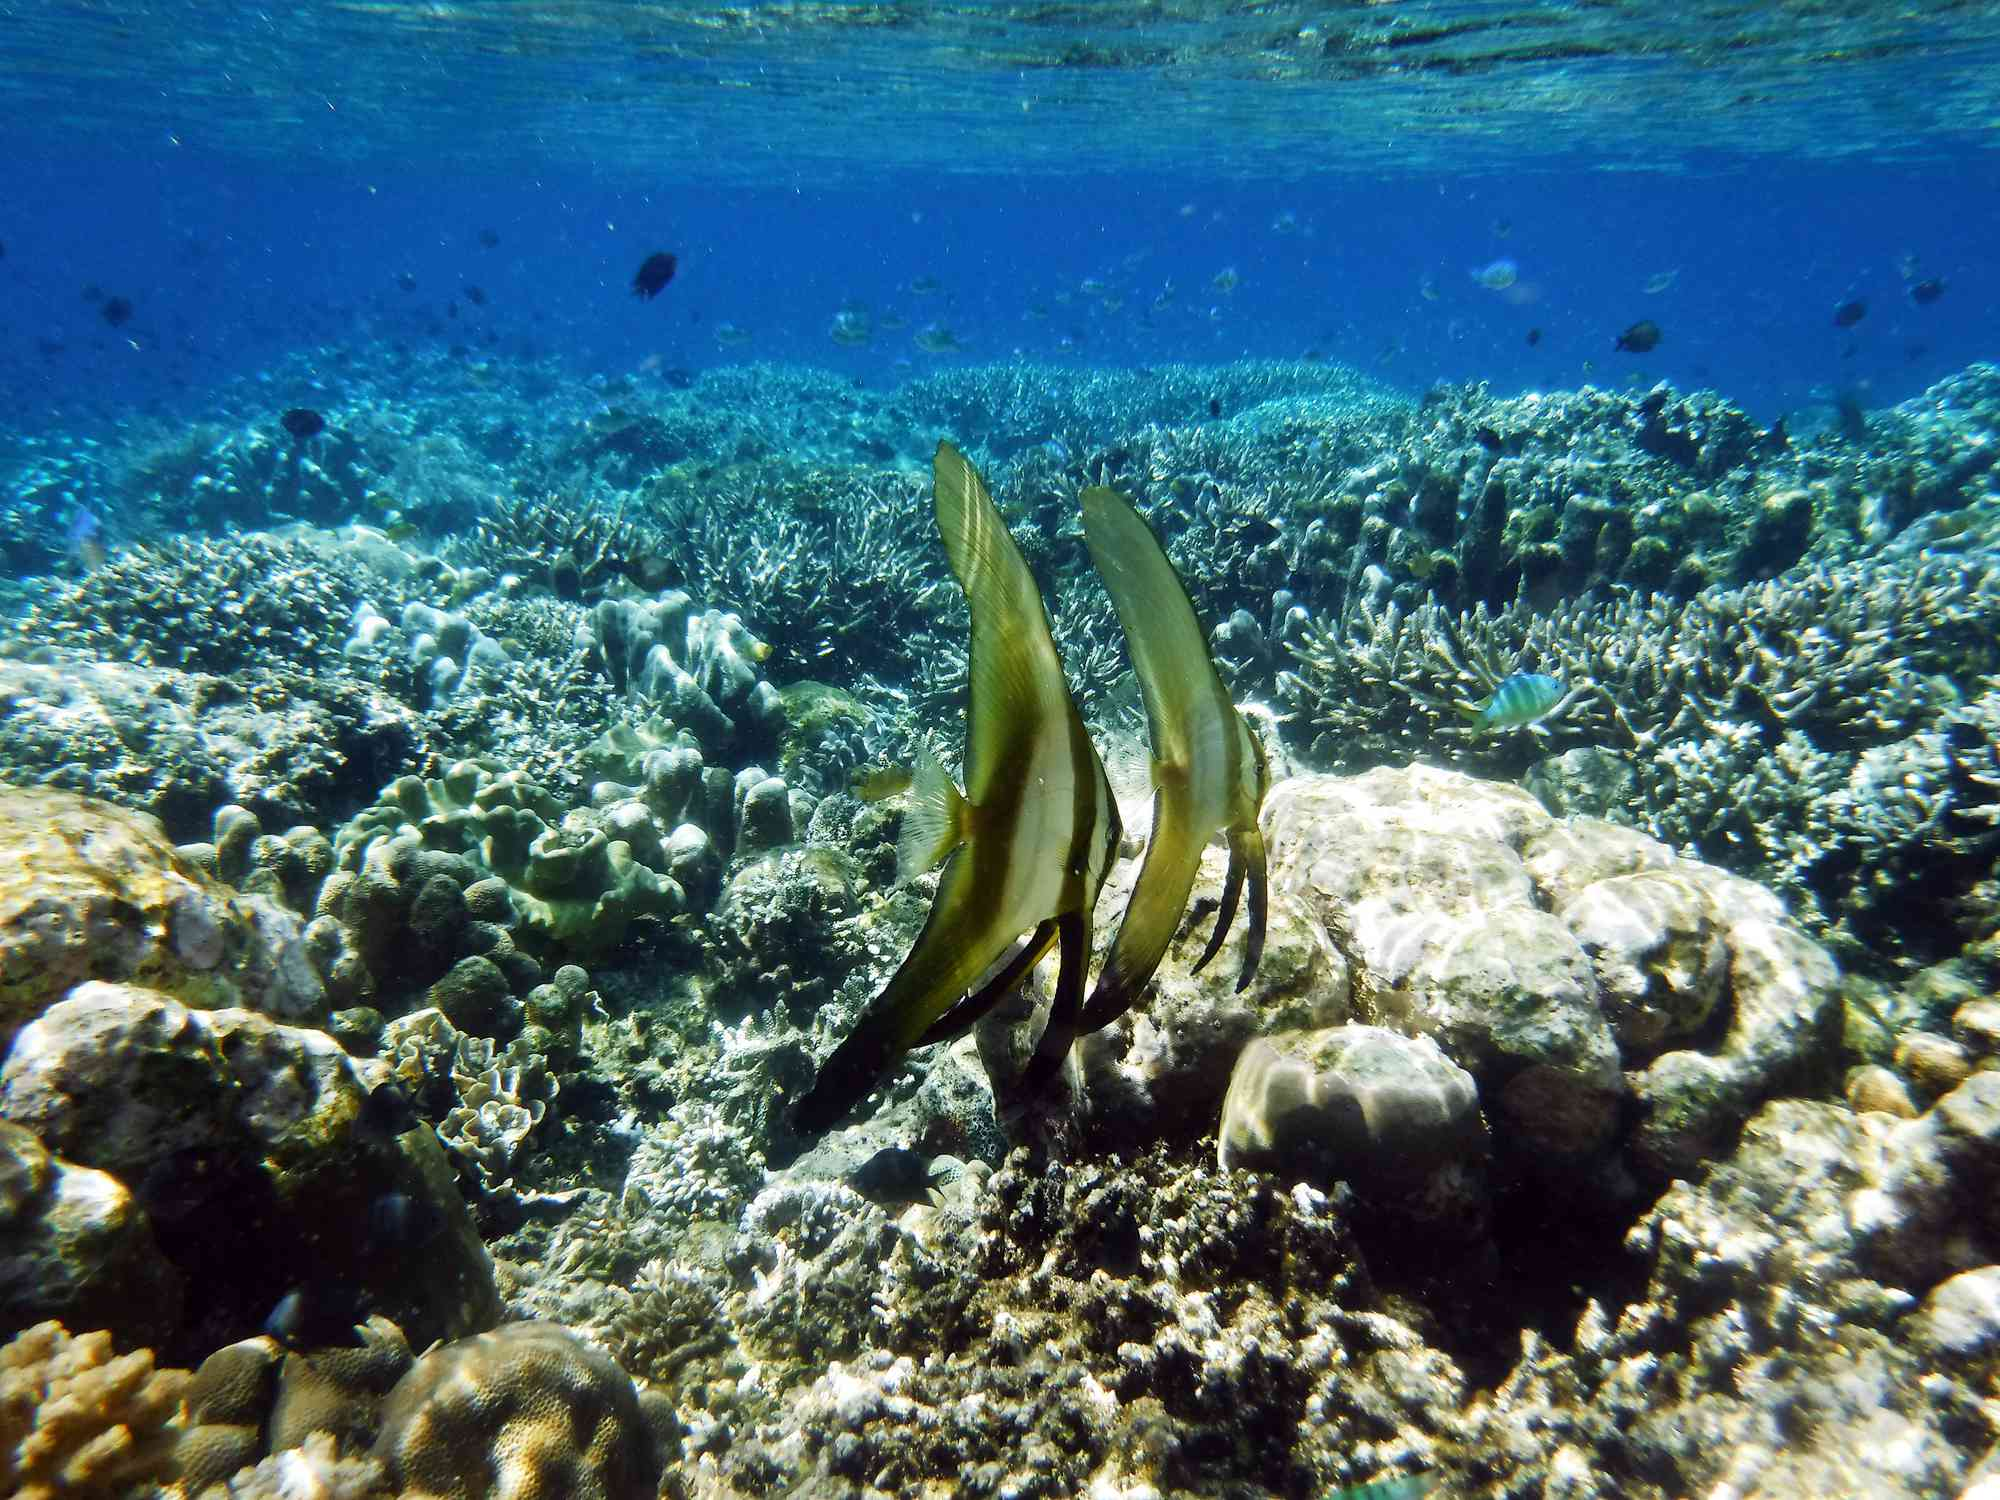 A pair of longfin batfish swimming on a shallow reef